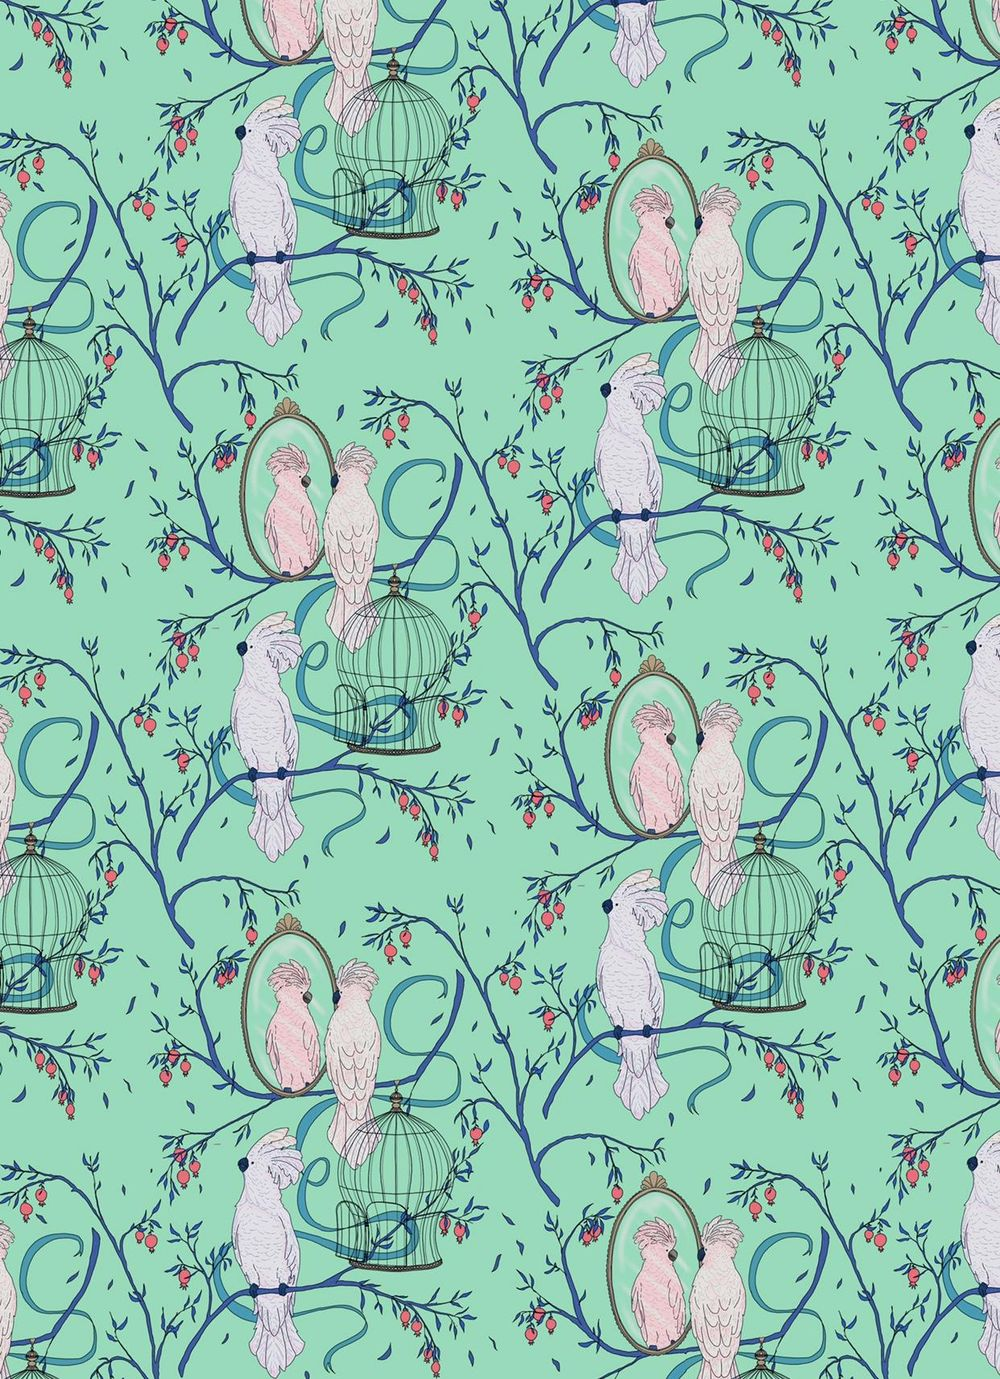 Cockatoo pattern - image 4 - student project